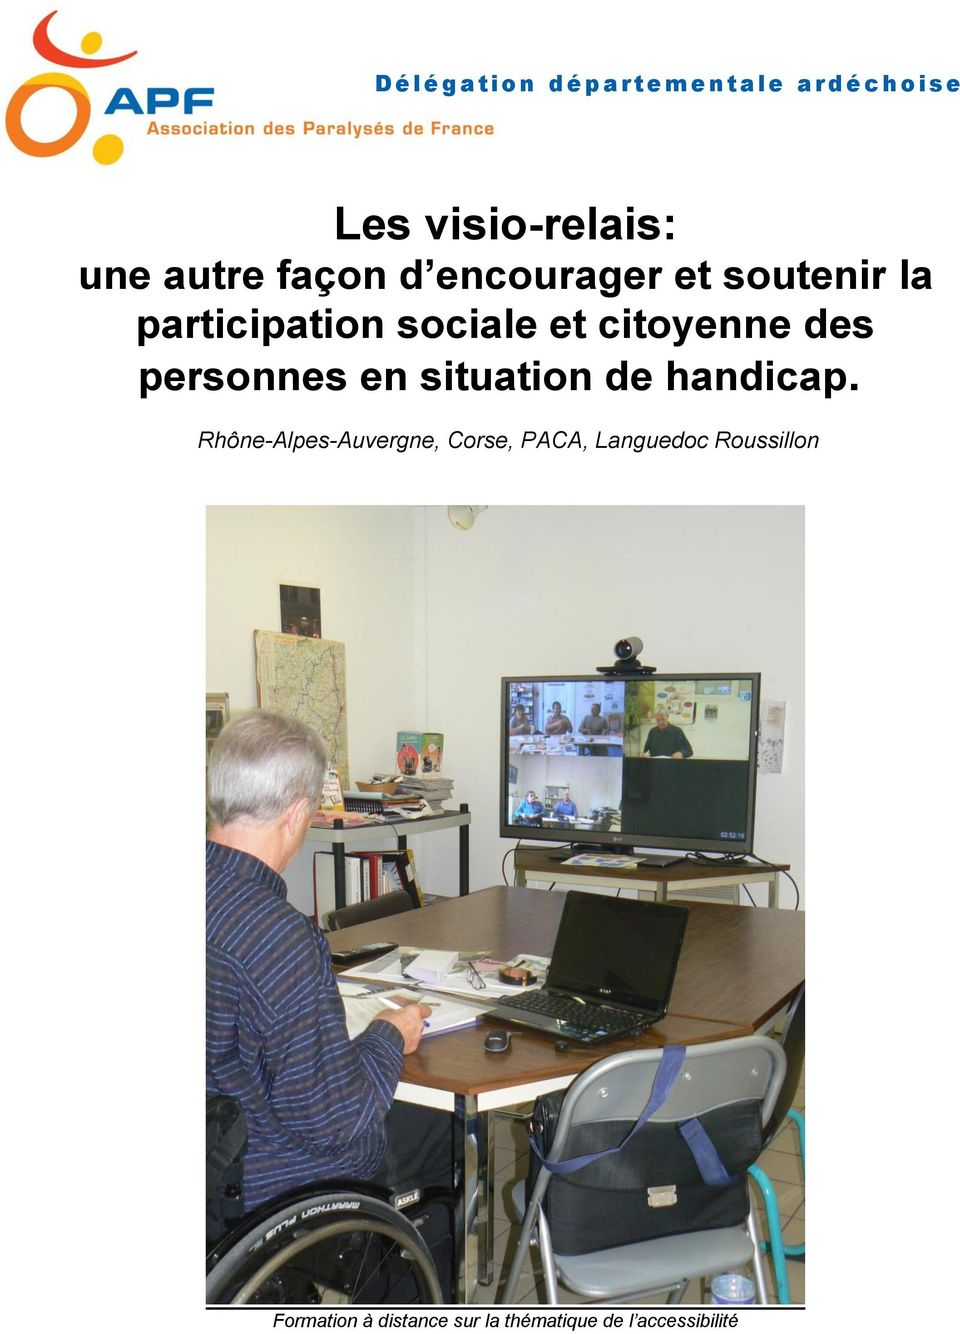 personnes en situation de handicap.